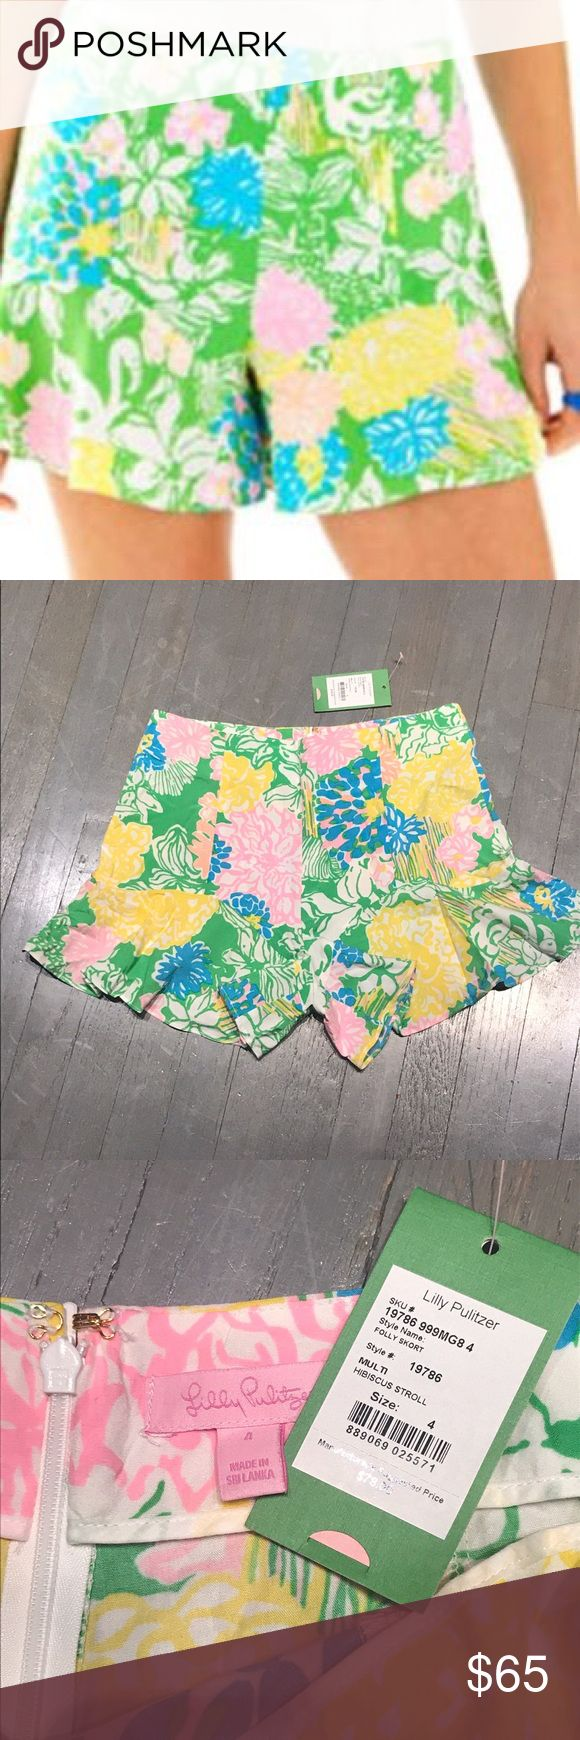 Lilly Pulitzer Hibiscus Stroll Folly Skort shorts Lilly Pulitzer Hibiscus Stroll Folly Skort shorts. Matching girls dress for sale in another listing Lilly Pulitzer Shorts Skorts